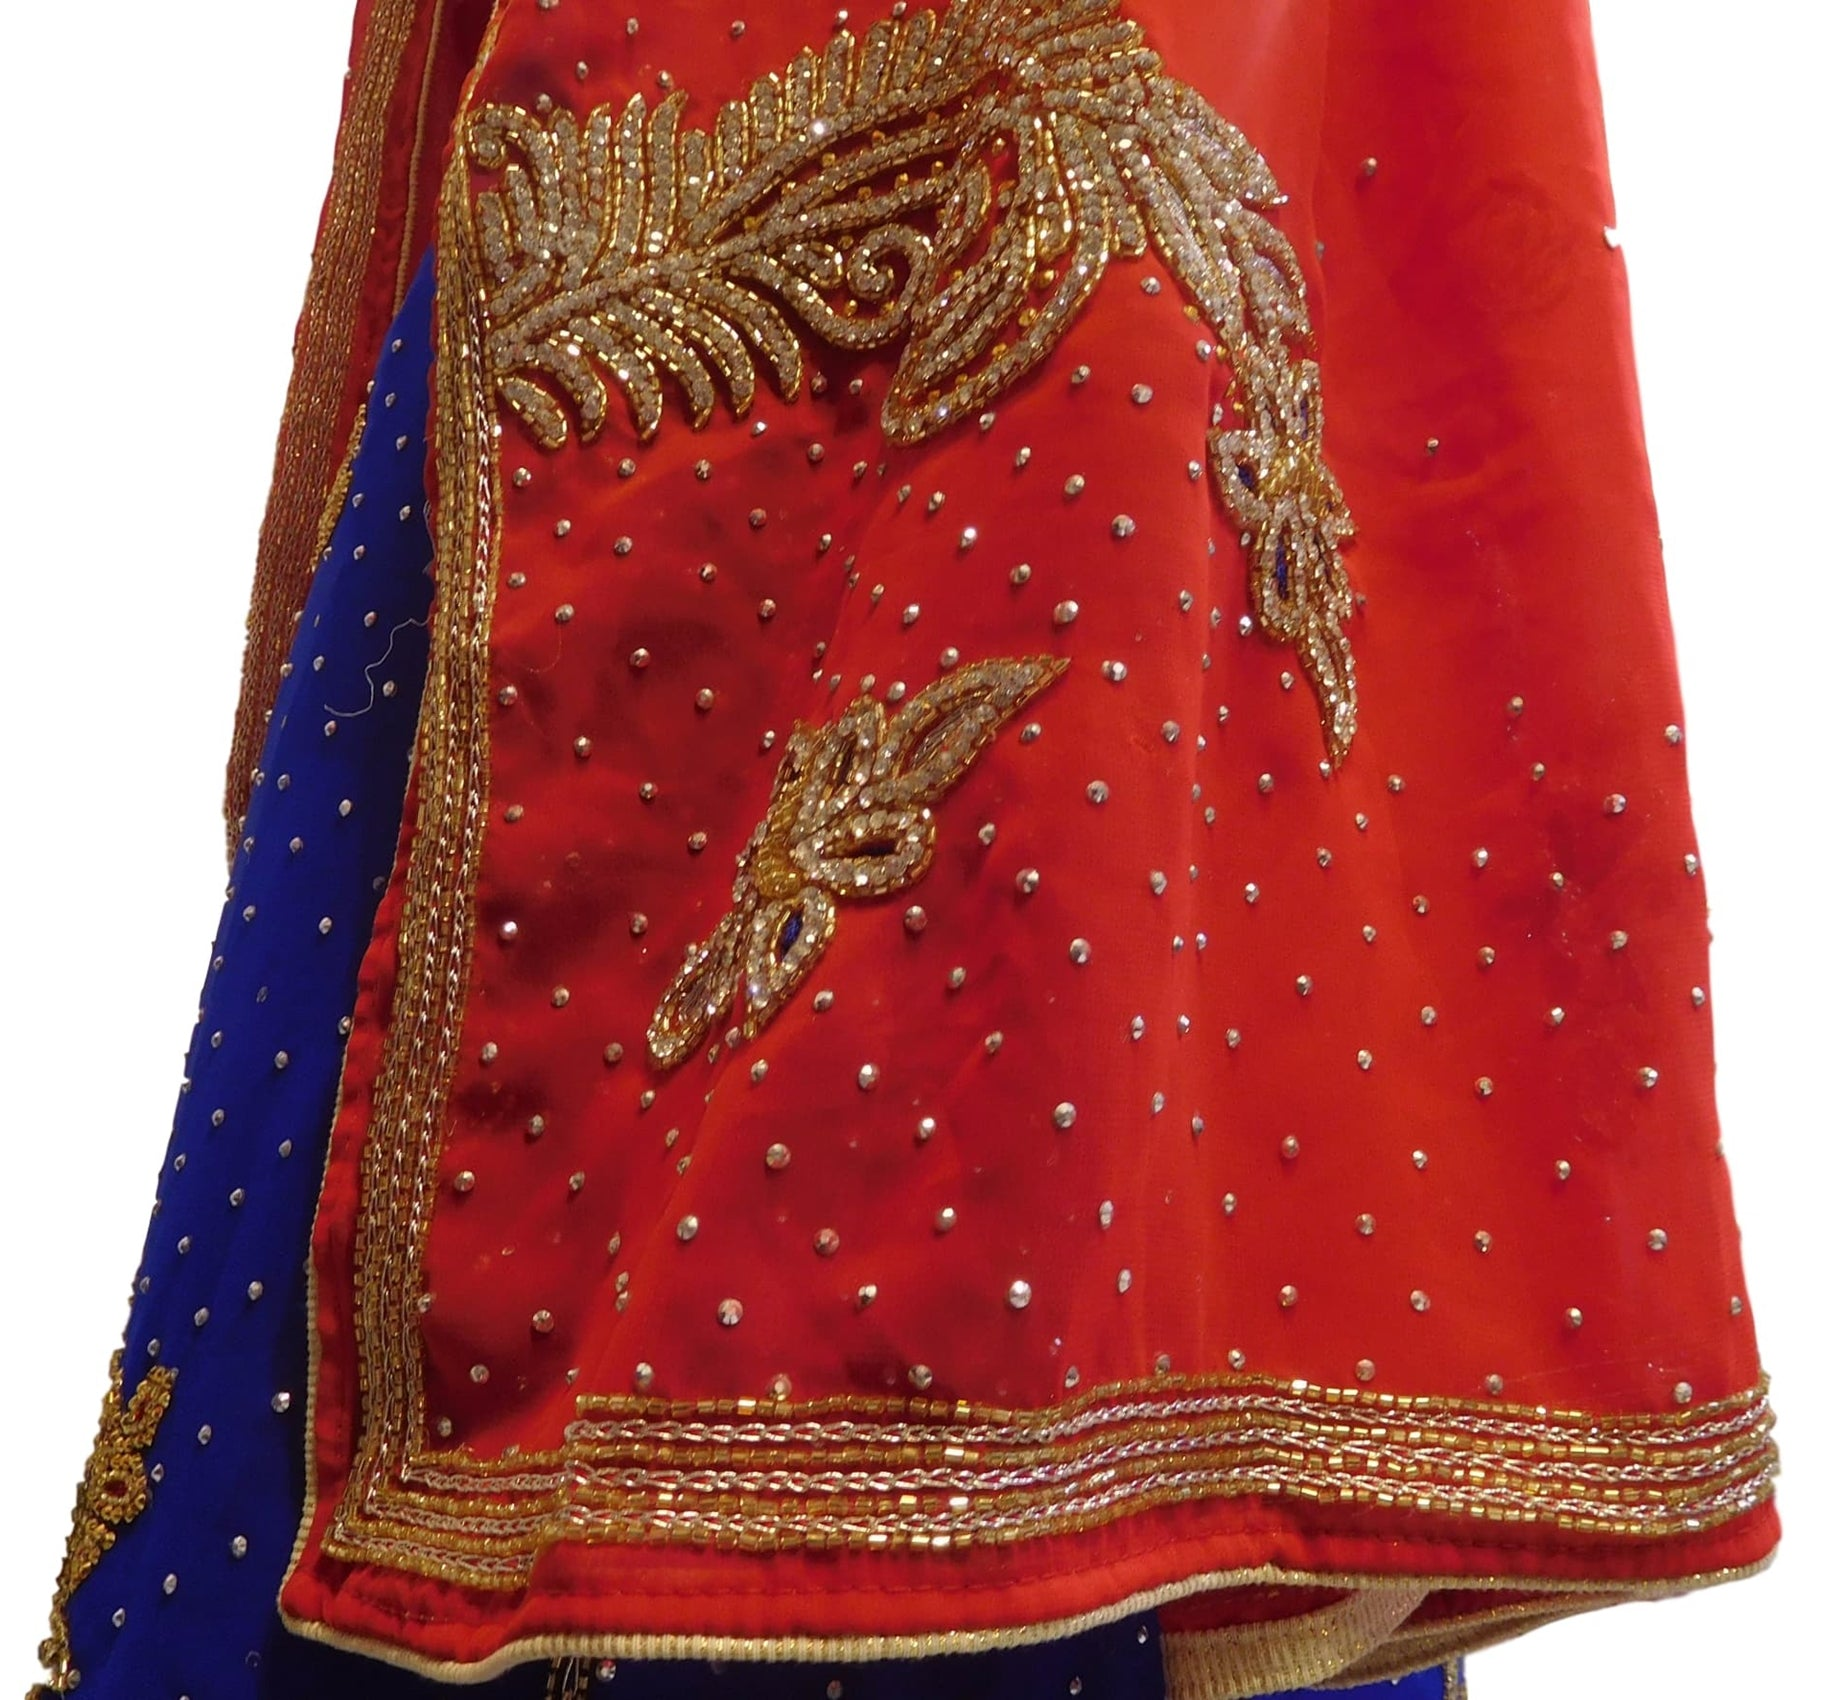 Red & Blue Designer Georgette Lahenga Style Hand Embroidery Cutdana Zari Thread Stone Work Saree Sari